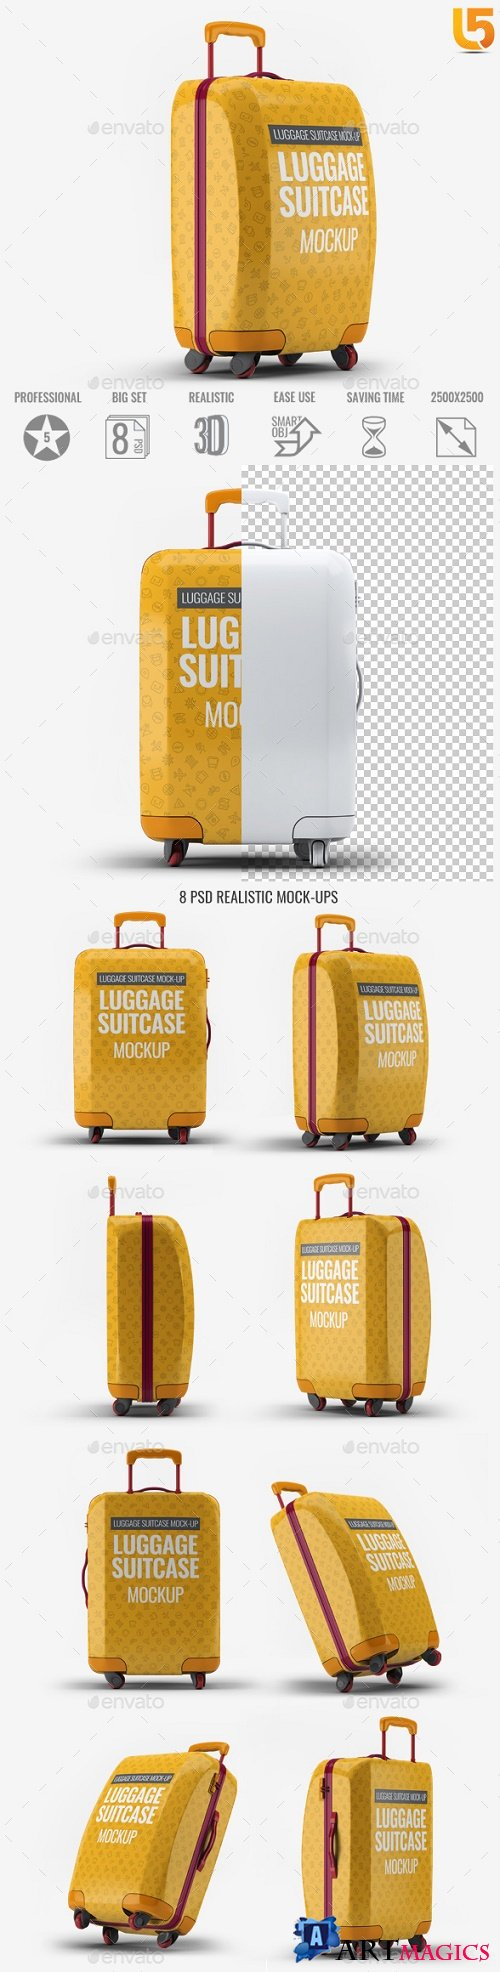 Luggage Suitcase Mock-up 21789981